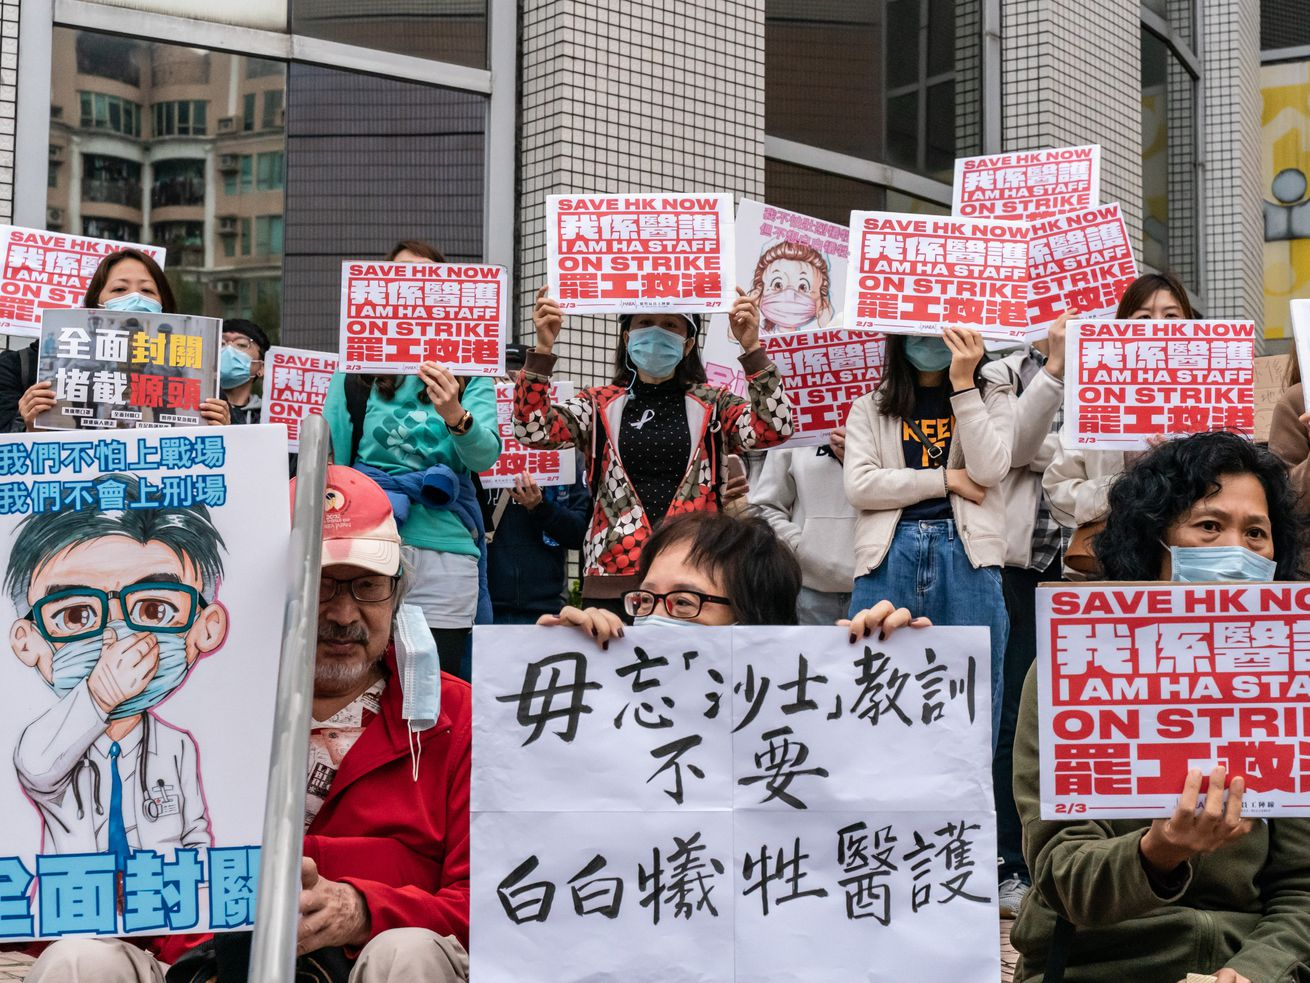 Medical workers in Hong Kong holding protest signs that refer to the coronavirus outbreak.